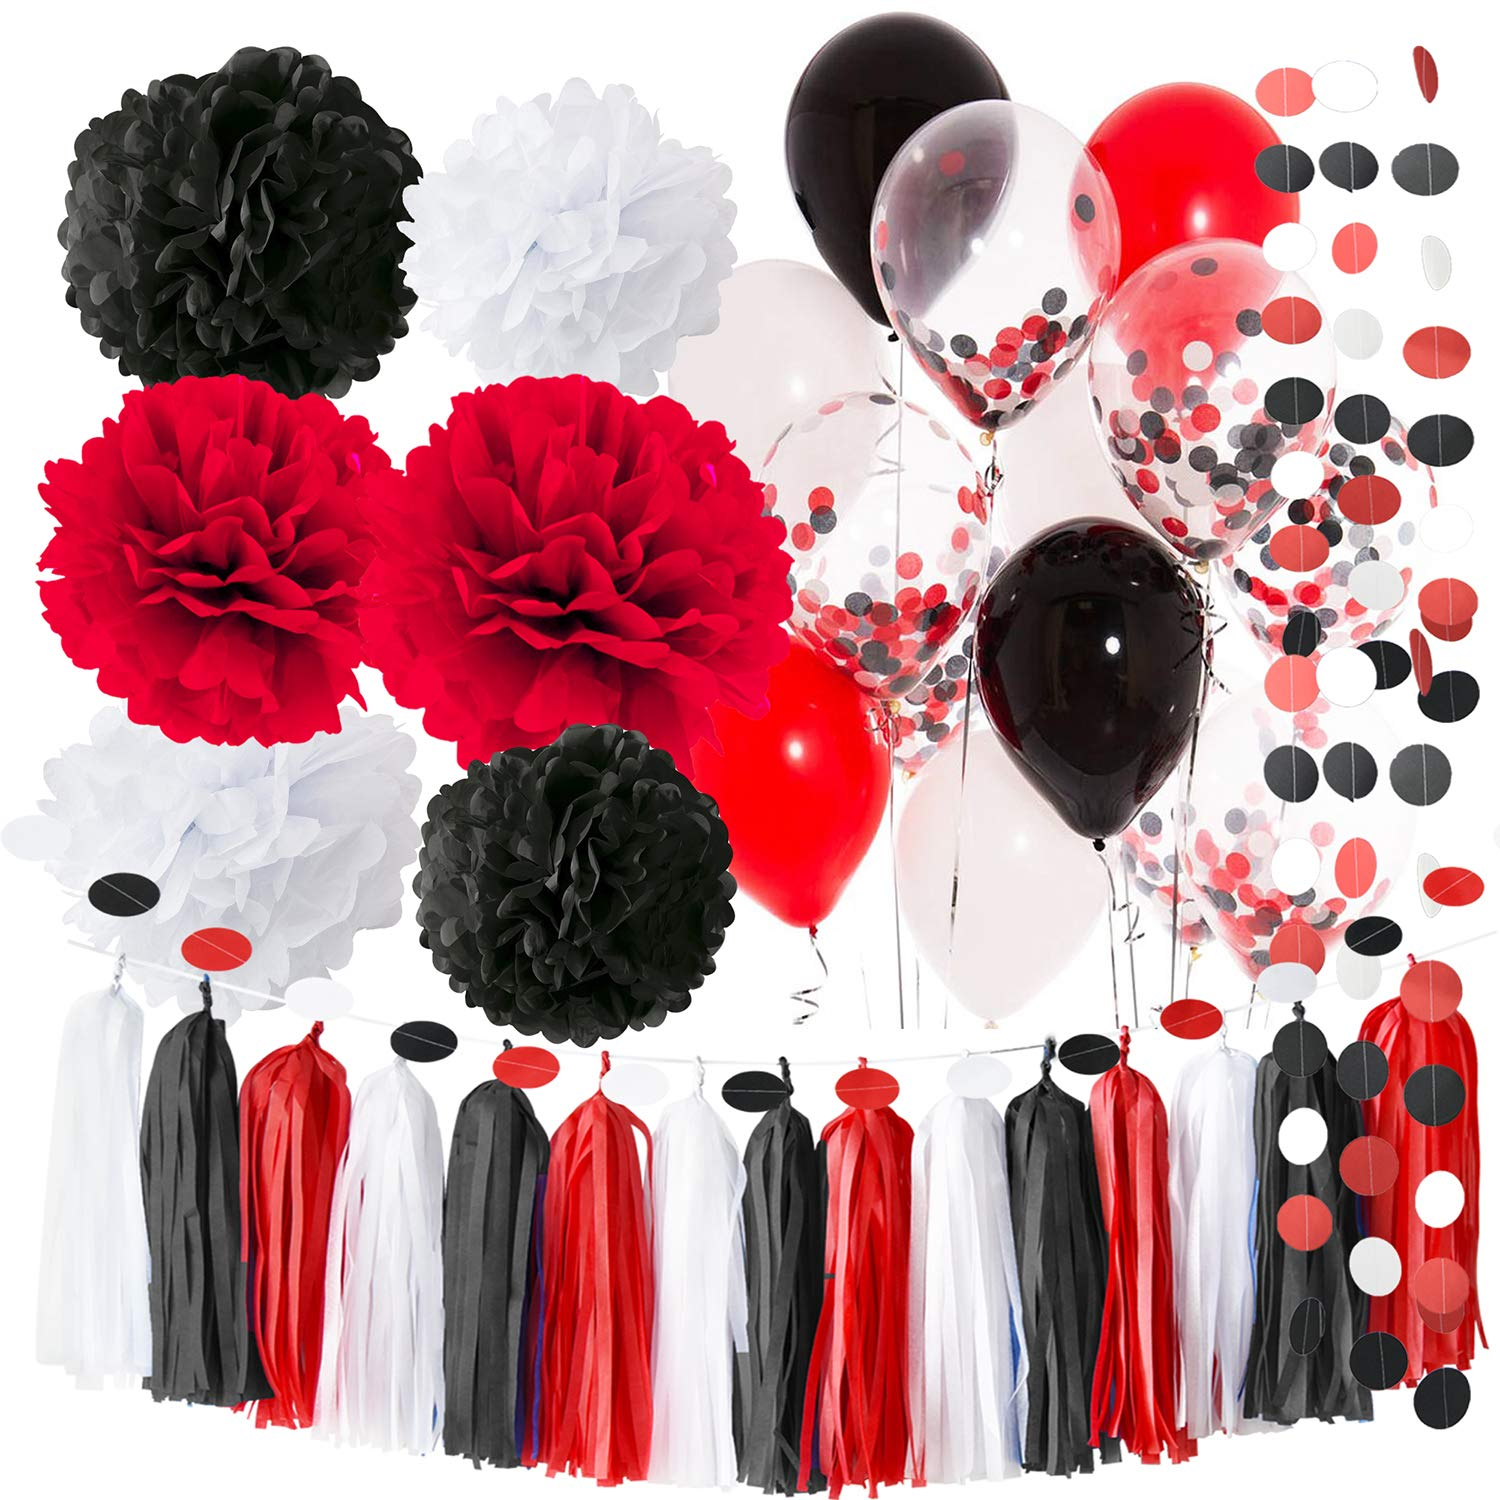 Pirate Party/Minnie Mouse Party Supplies White Black Red Ballons Pirate Birthday Party Decorations/First Birthday Girl Decorations Tissue Paper Pom Pom Minnie Mouse Birthday Party Decorations